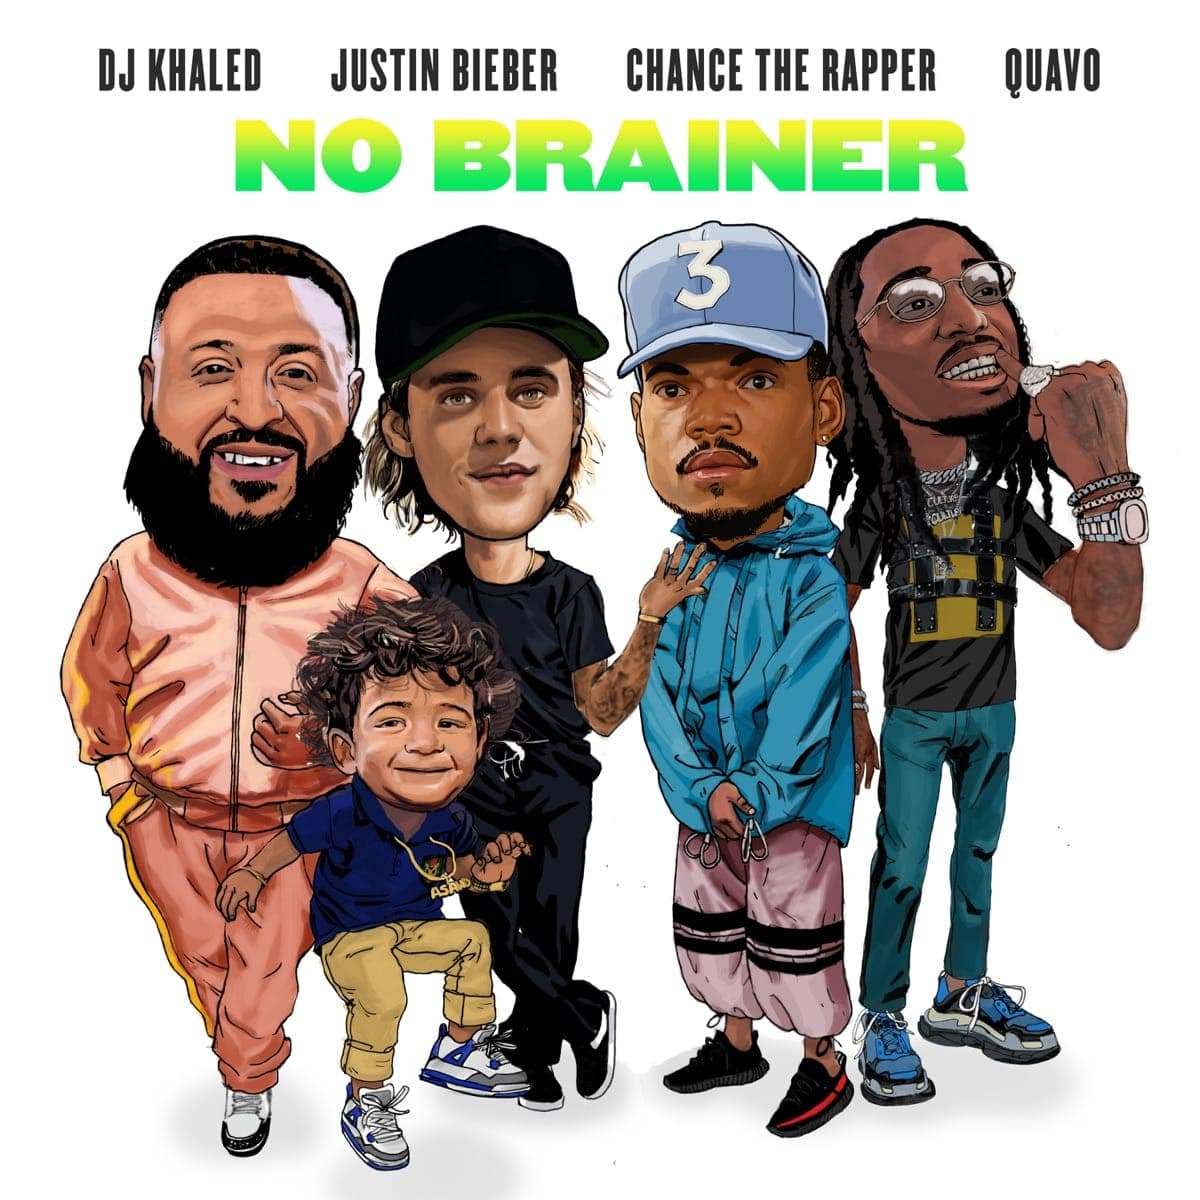 No Brainer - DJ Khaled & Justin Bieber